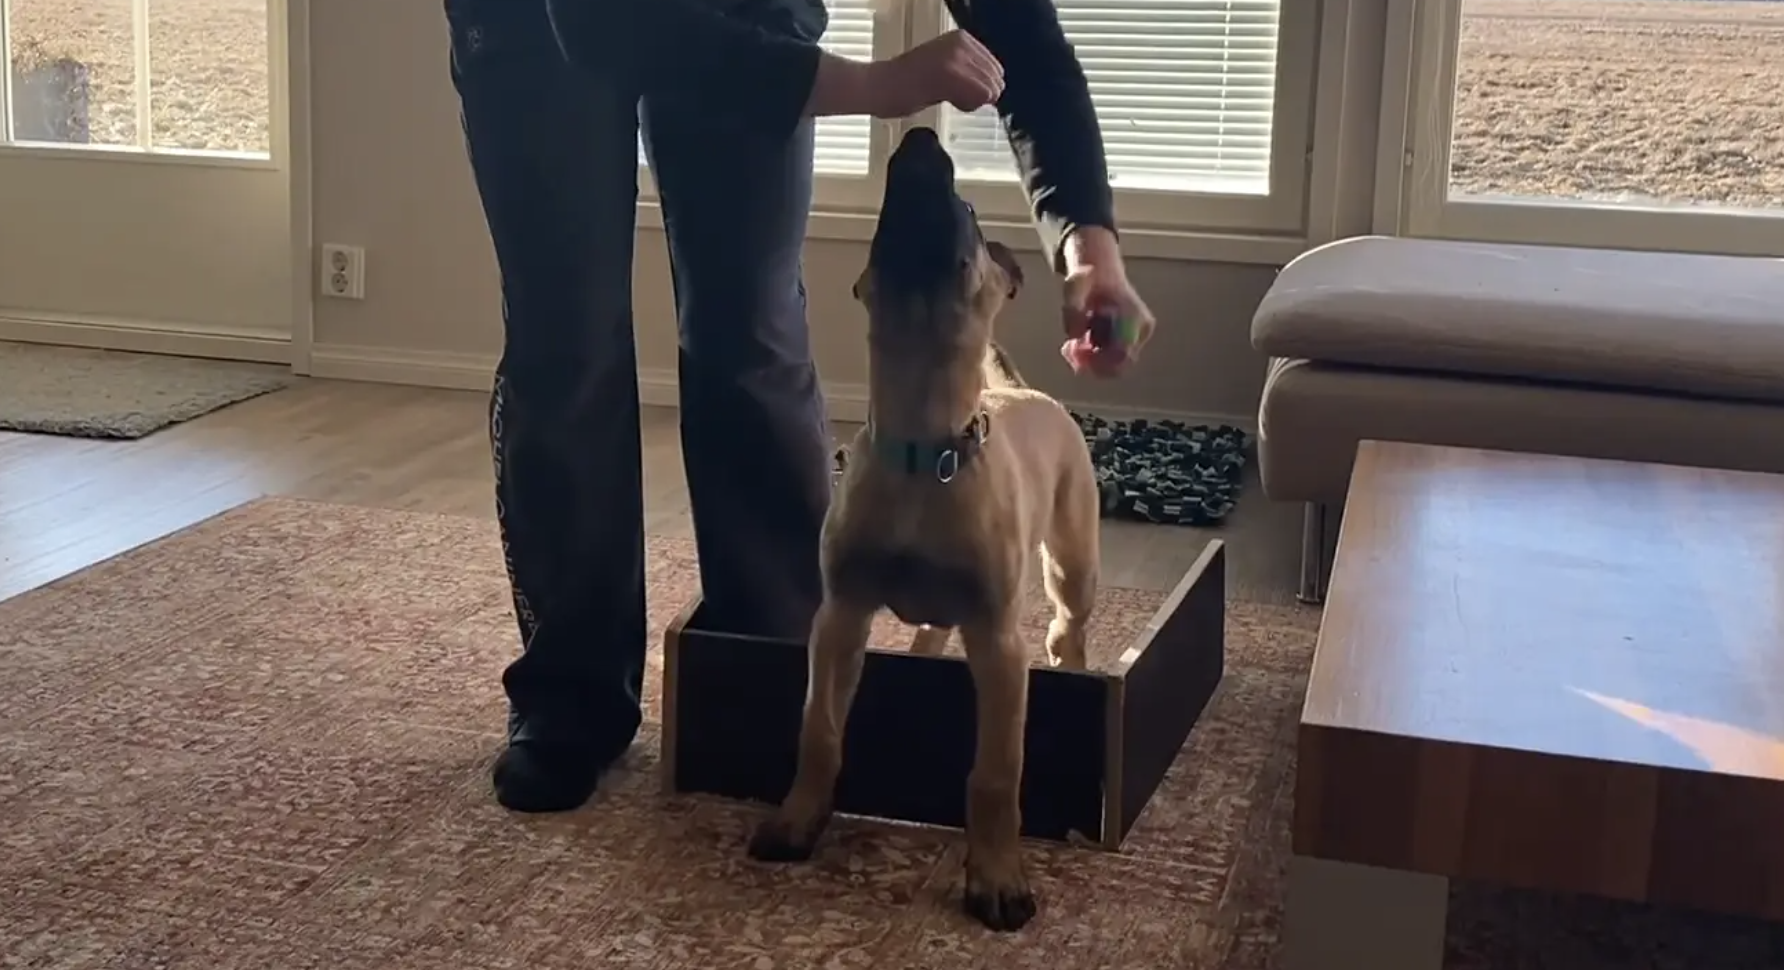 IGP pup learning sit, down and stand exercise